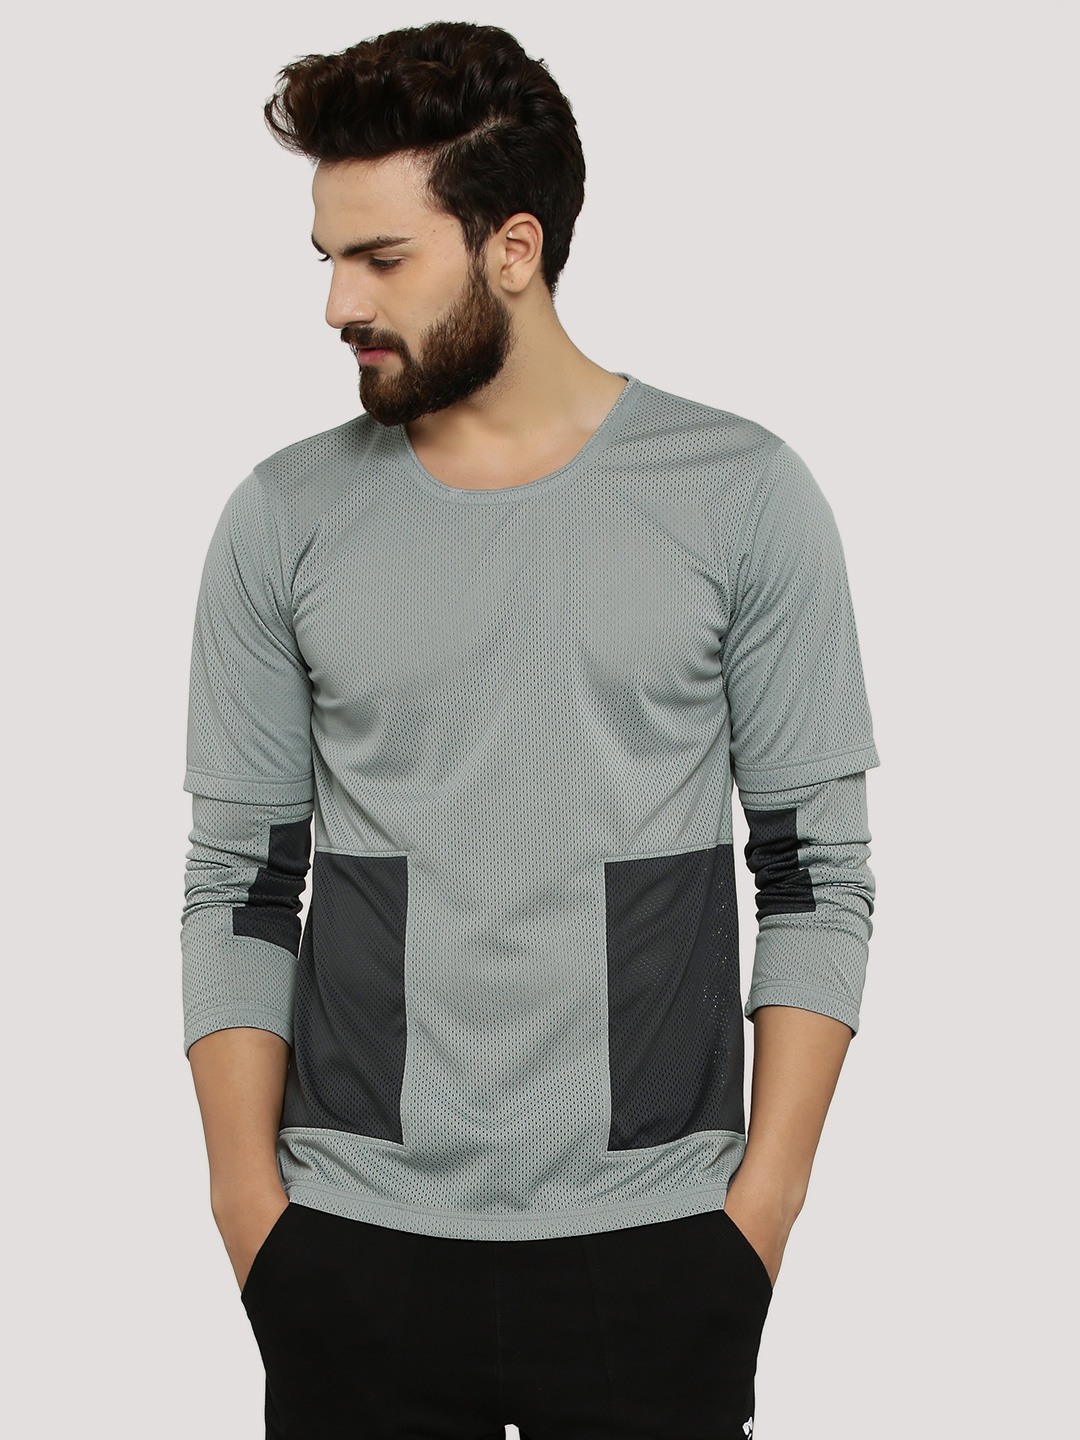 Zero.Zero Light Grey Panel T-Shirt With Double Layer Sleeves 1